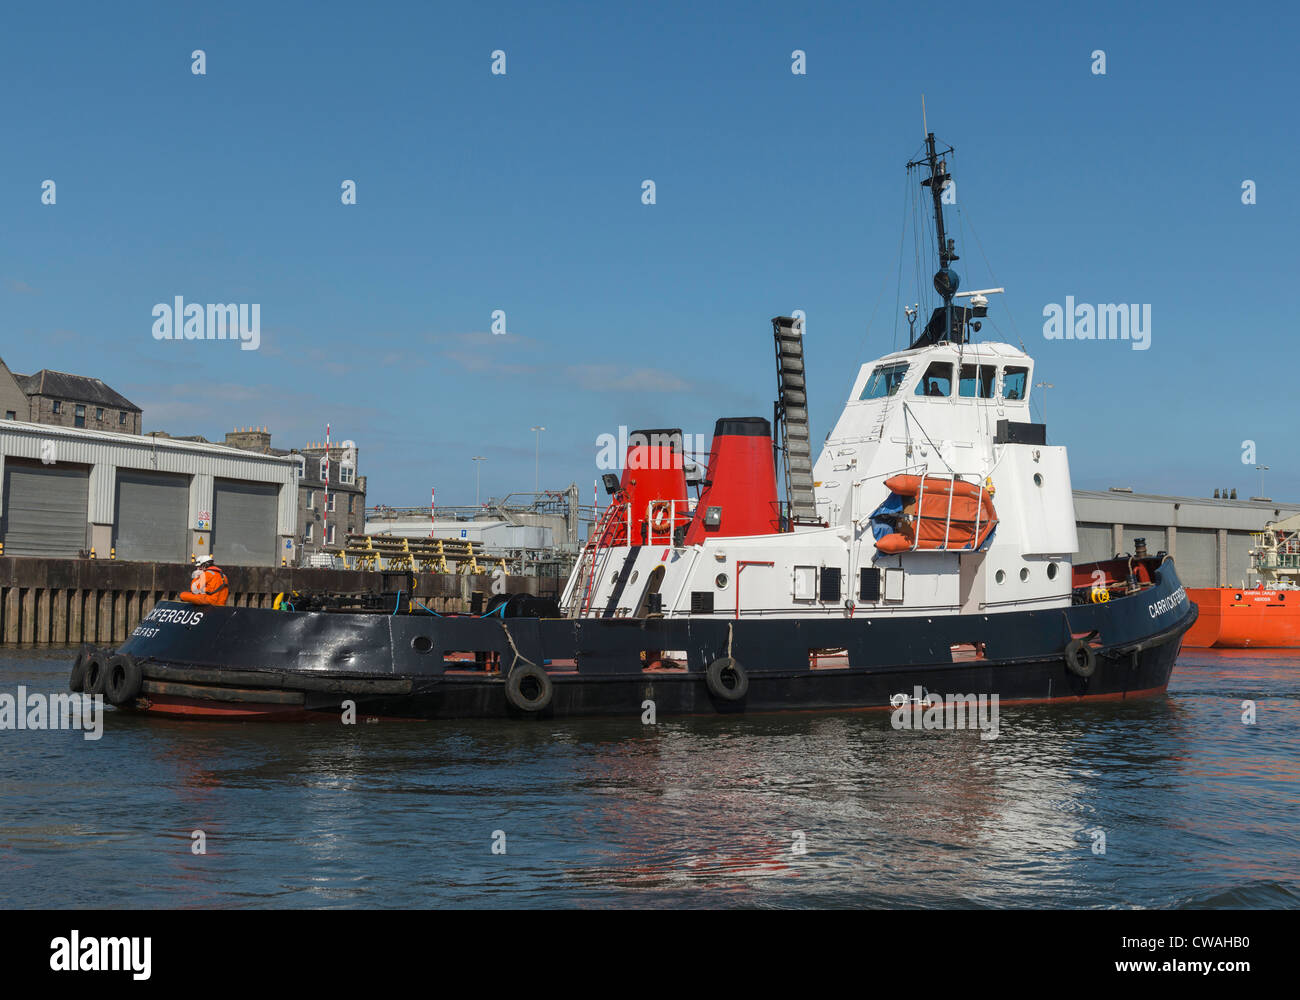 Tug Boat in Aberdeen Harbour - Stock Image